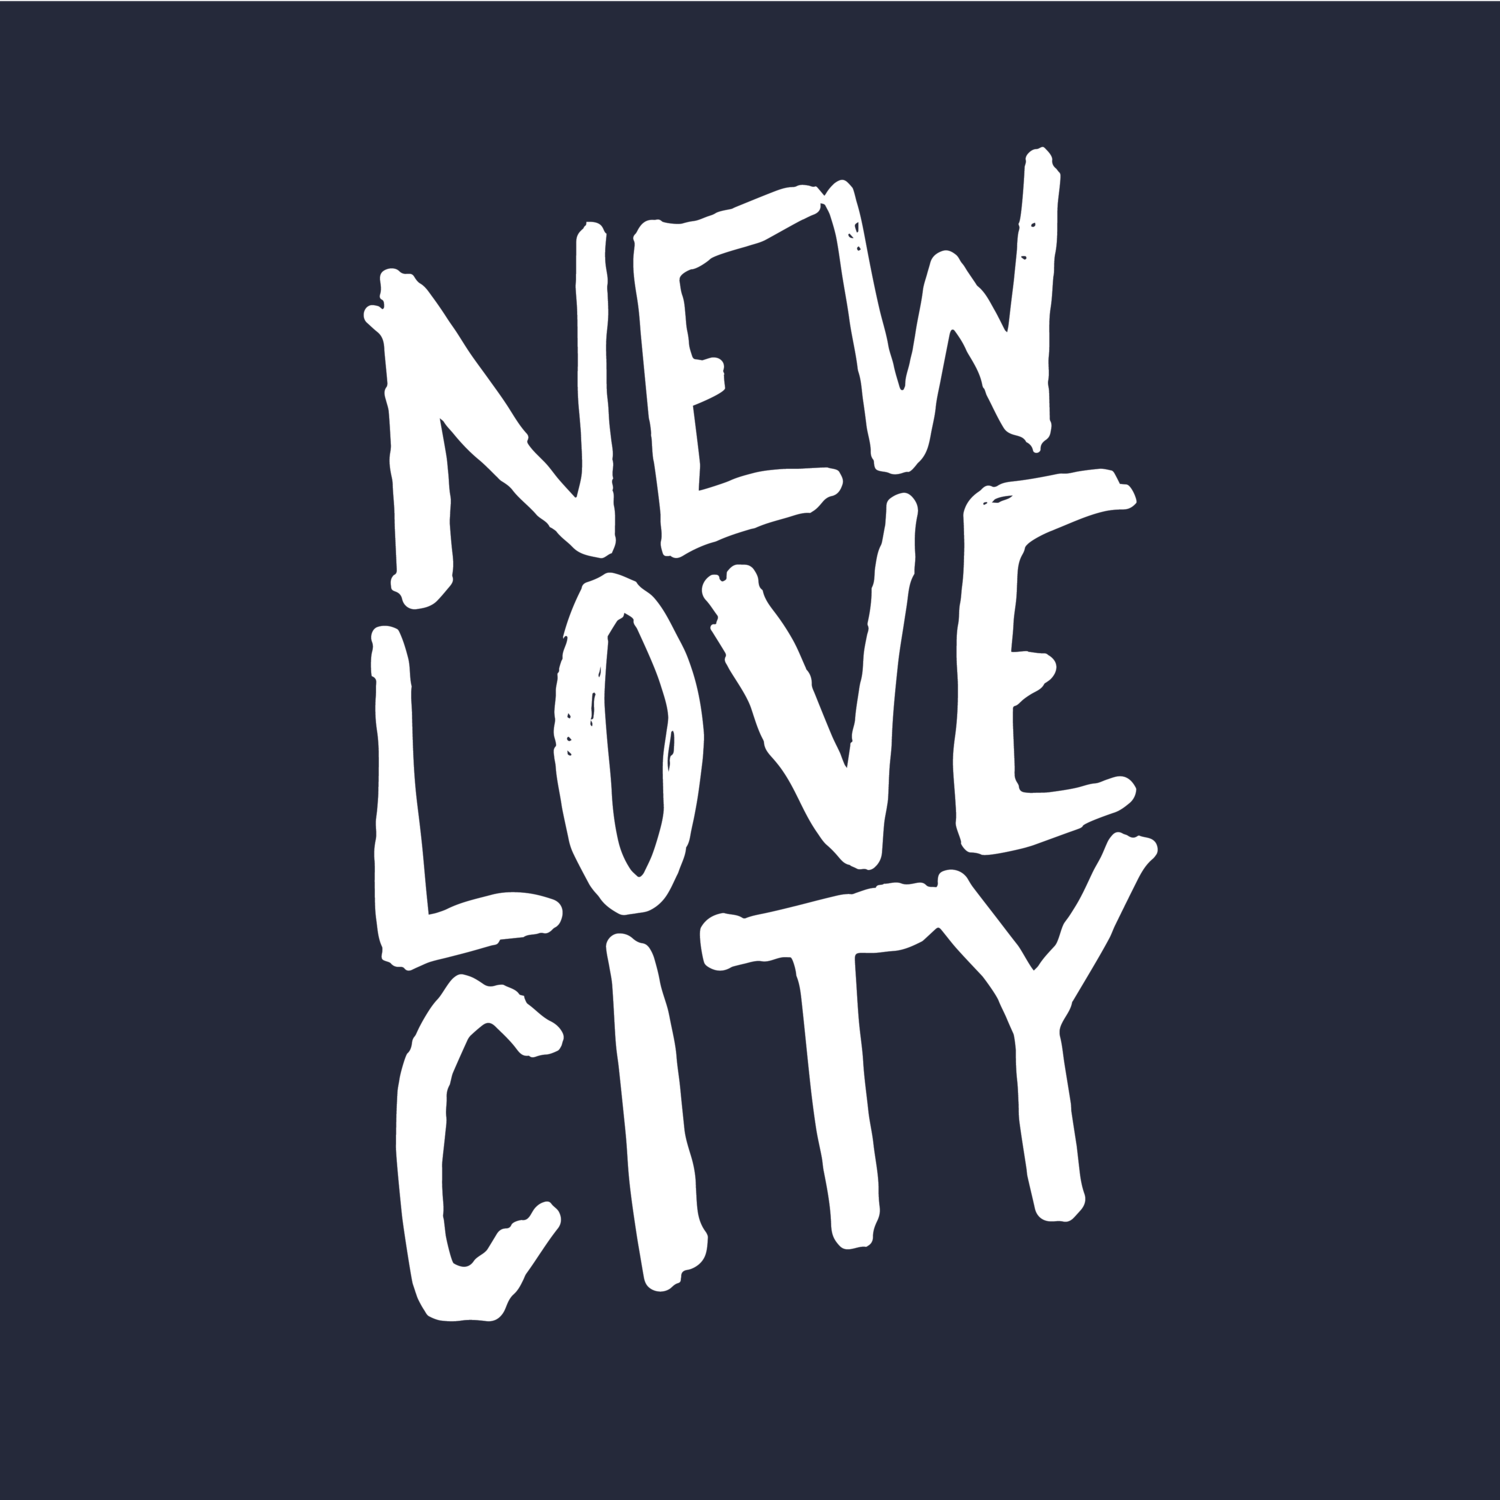 NEW LOVE CITY